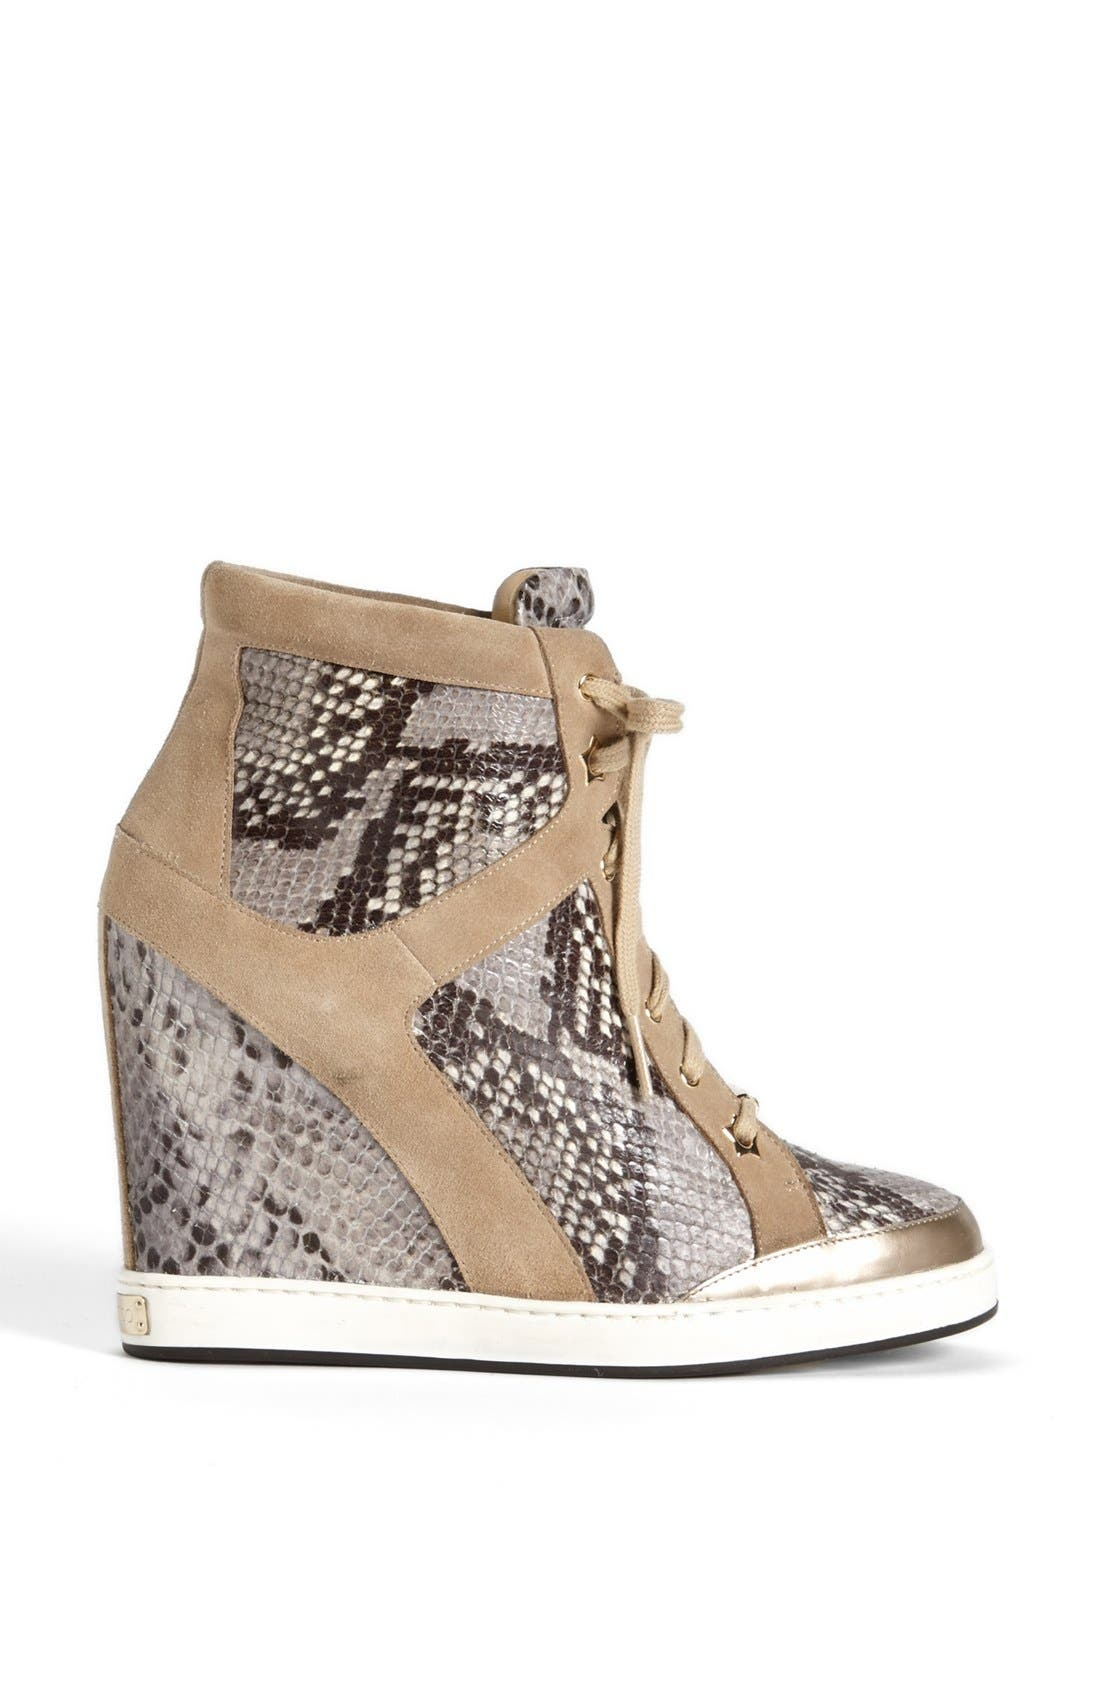 Alternate Image 3  - Jimmy Choo 'Panama' Wedge Sneaker